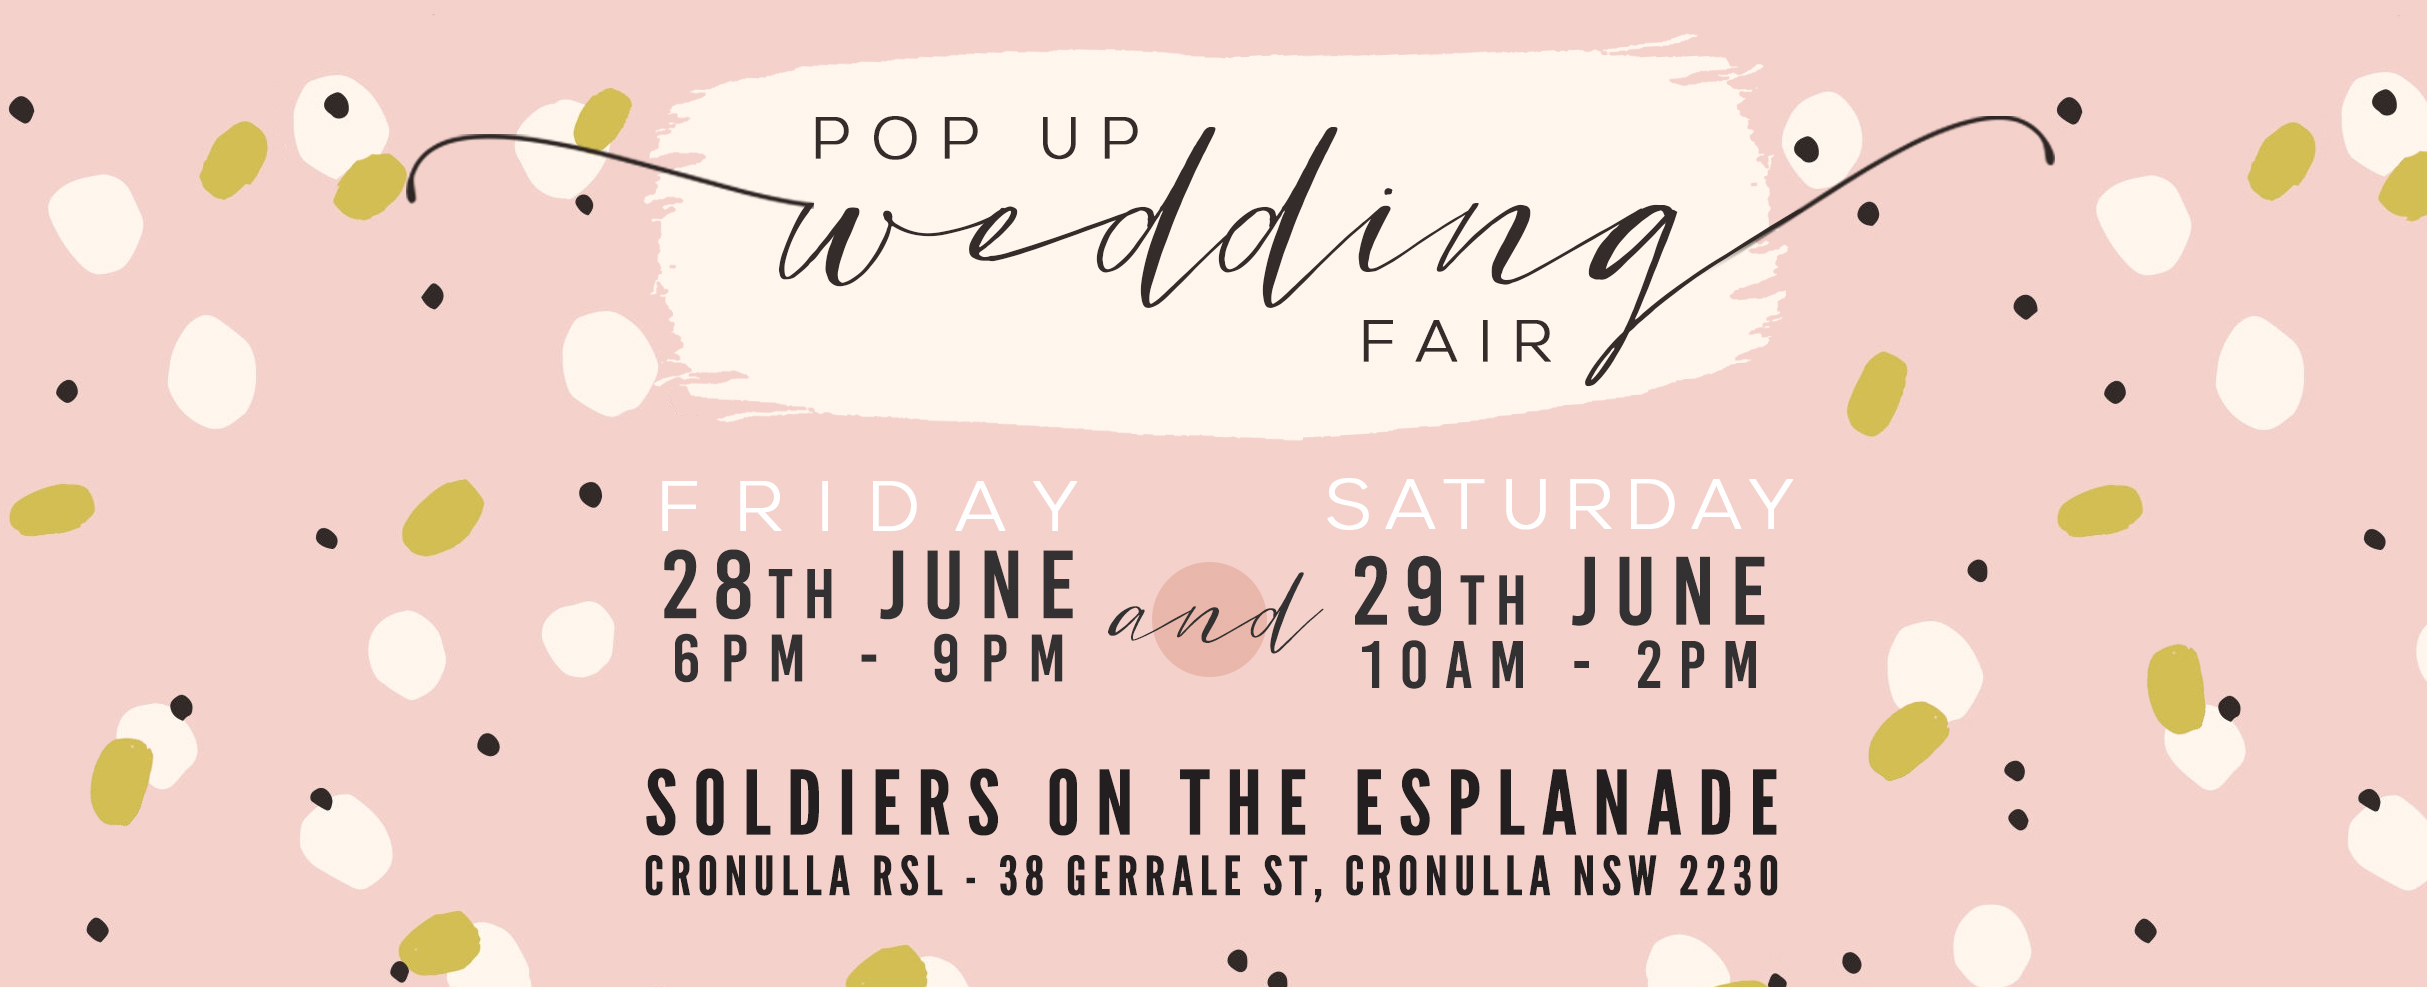 2019 wedding fair Web Header.jpg